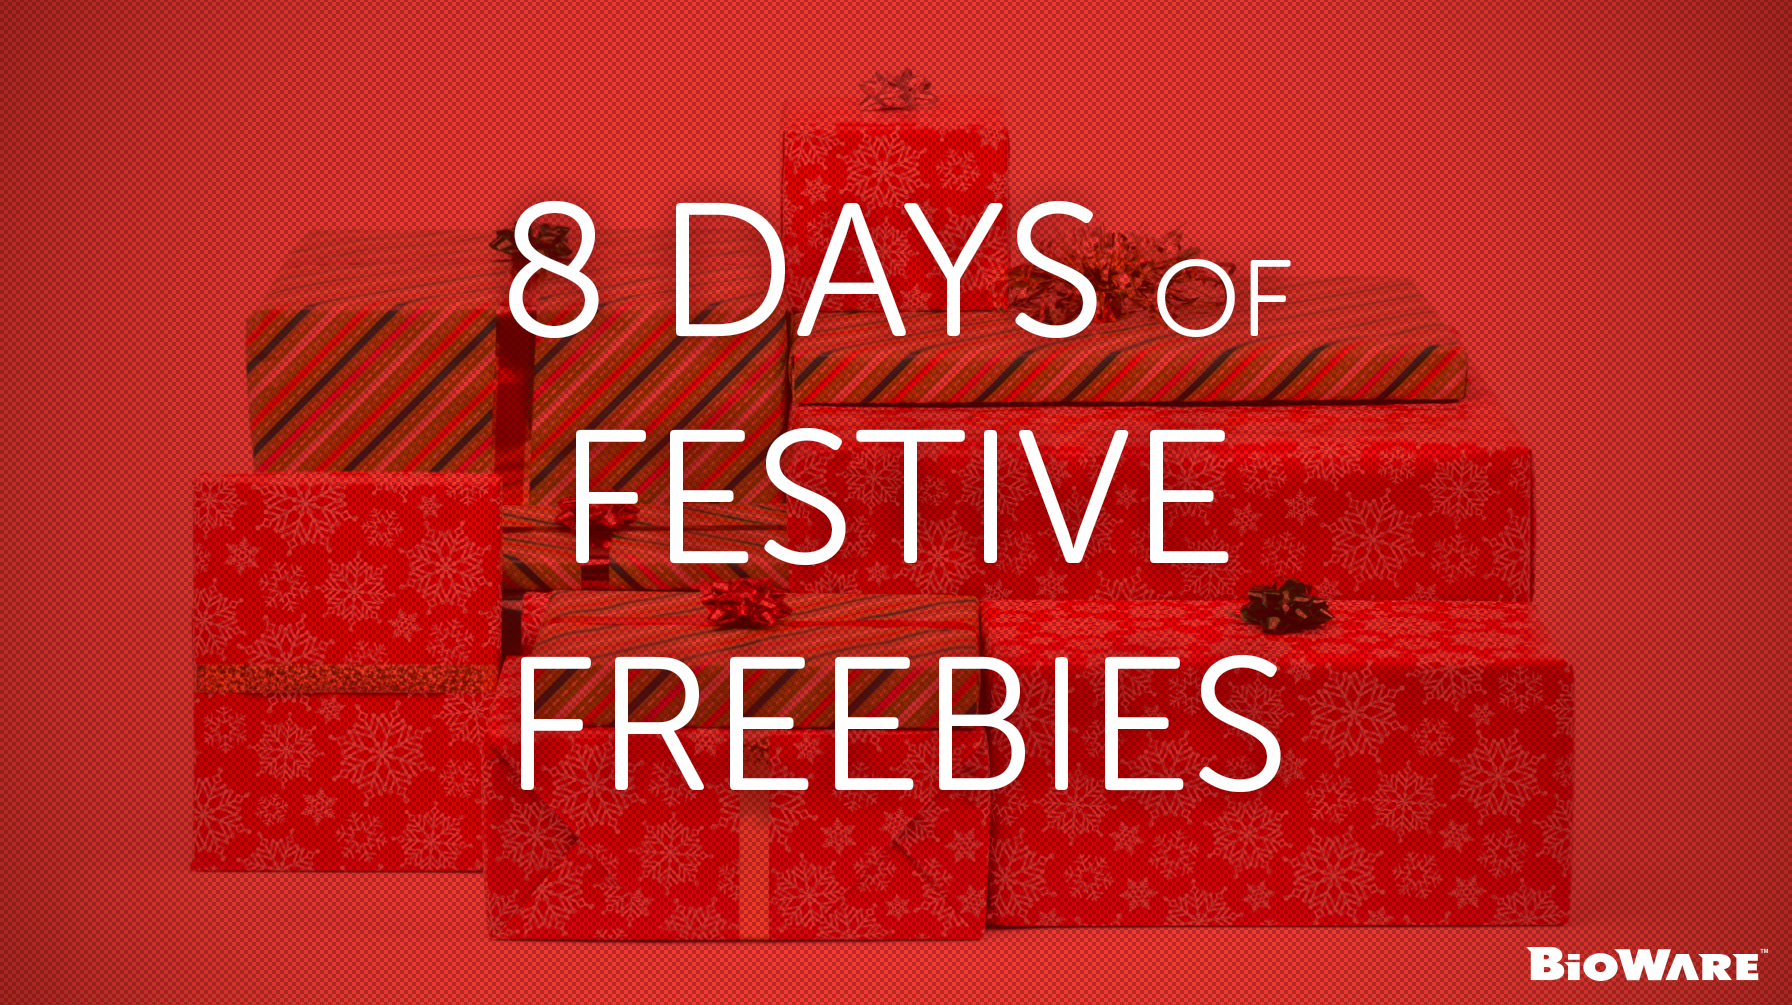 The Eight Days of Festive Freebies